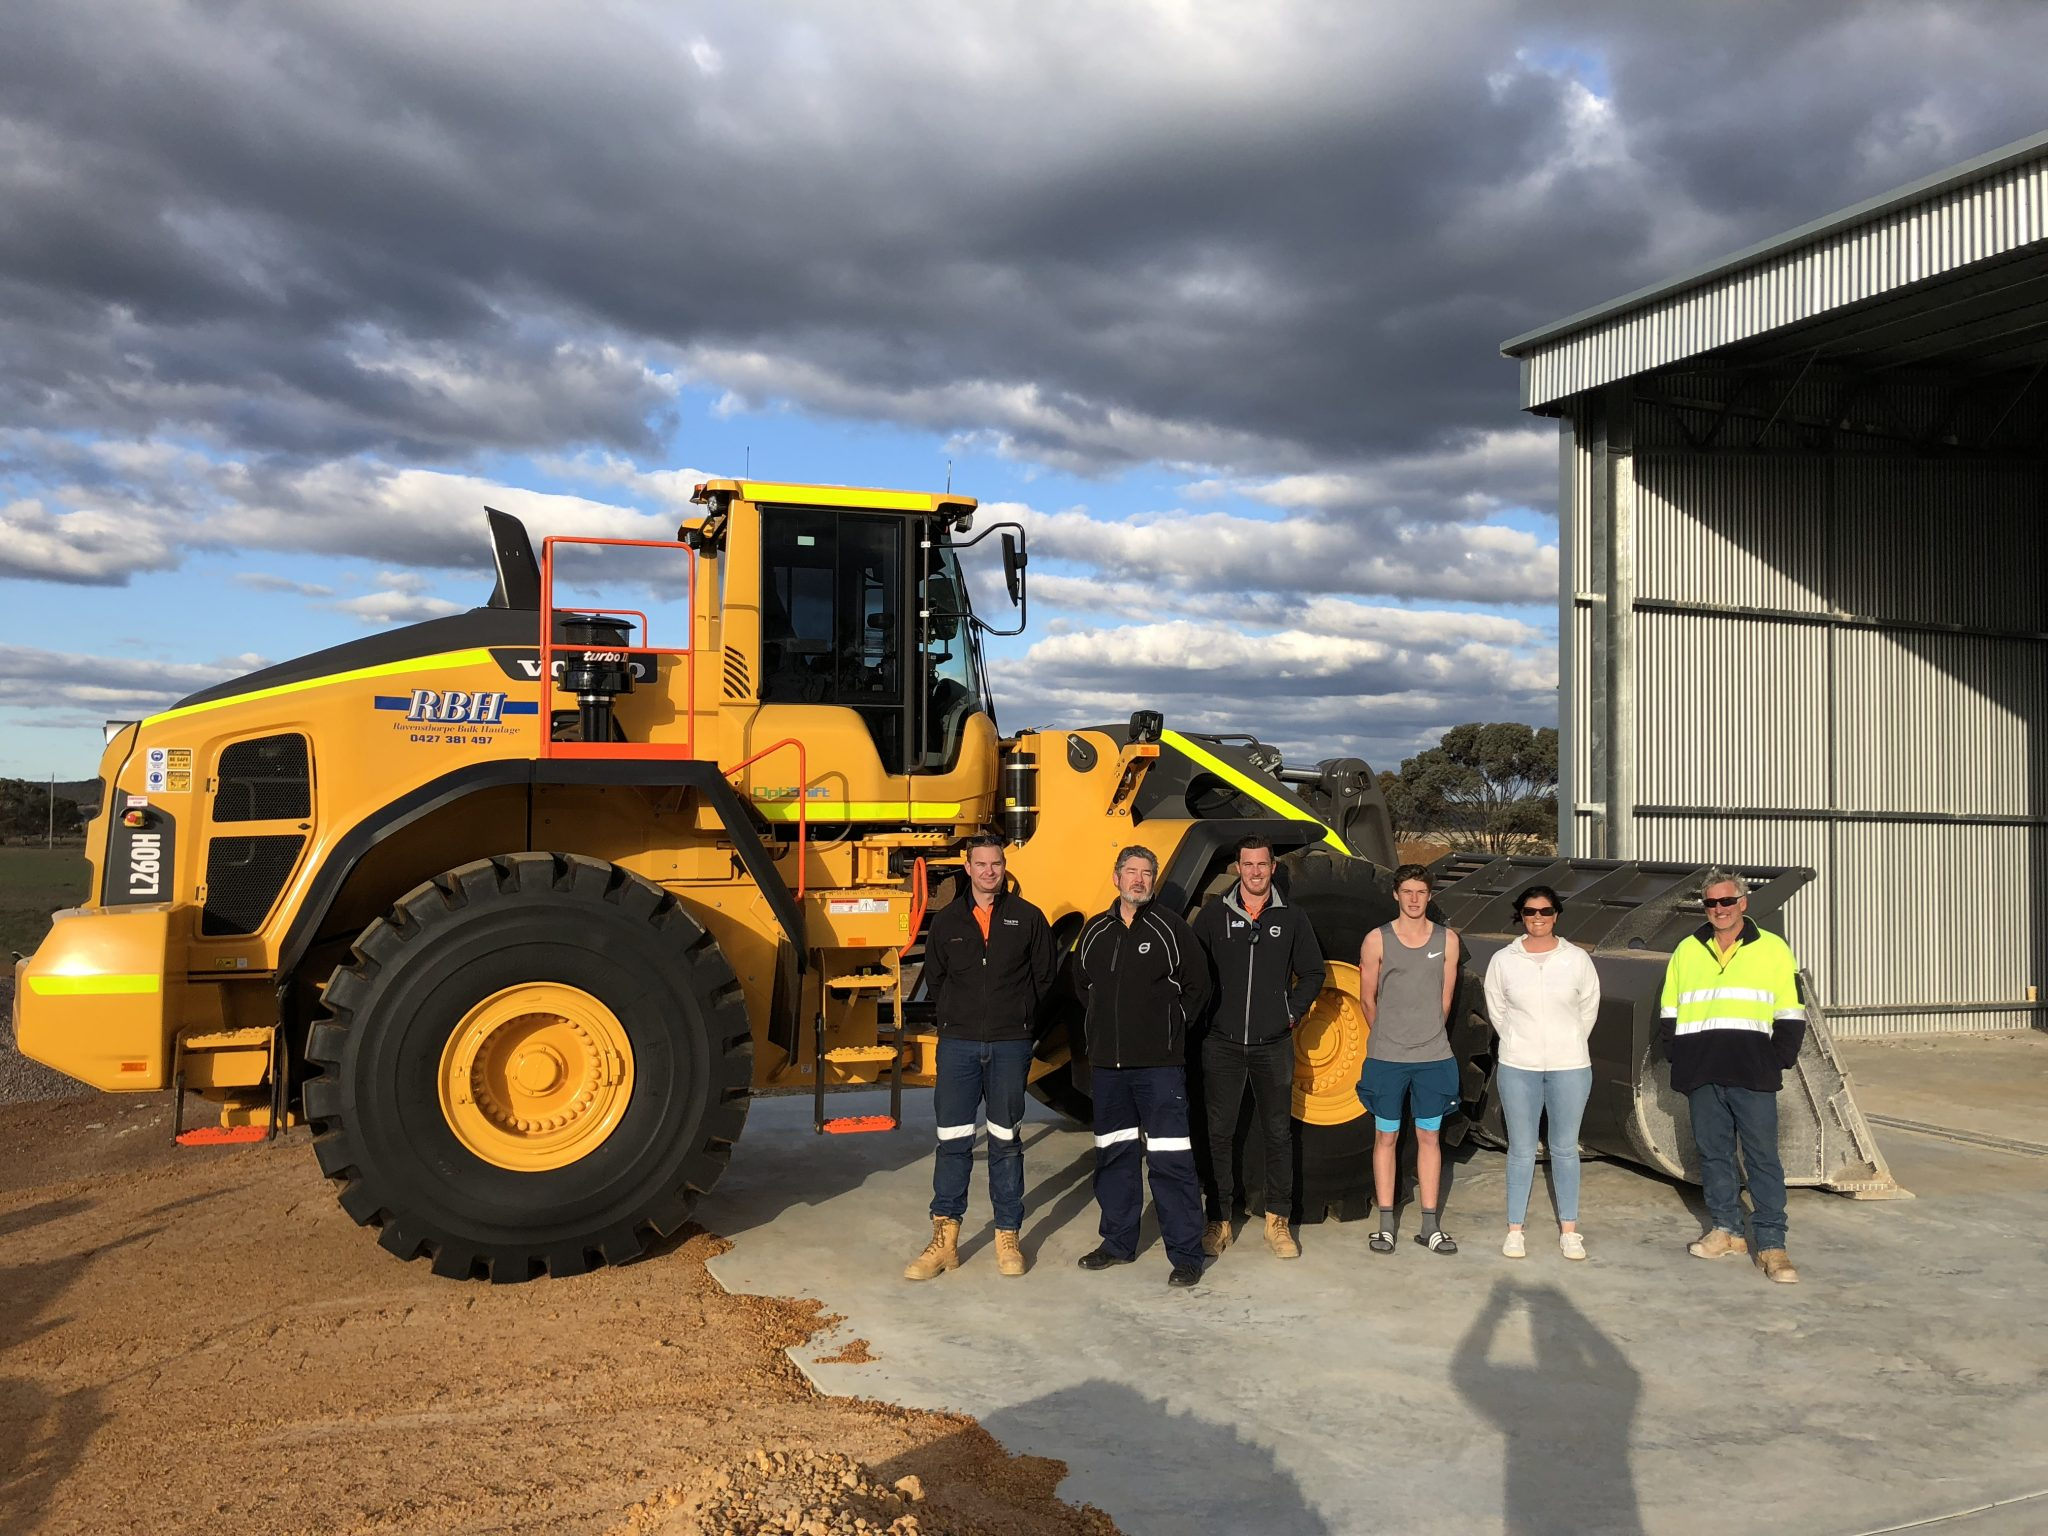 RBH meets growing lithium demand with powerful Volvo L260H 9